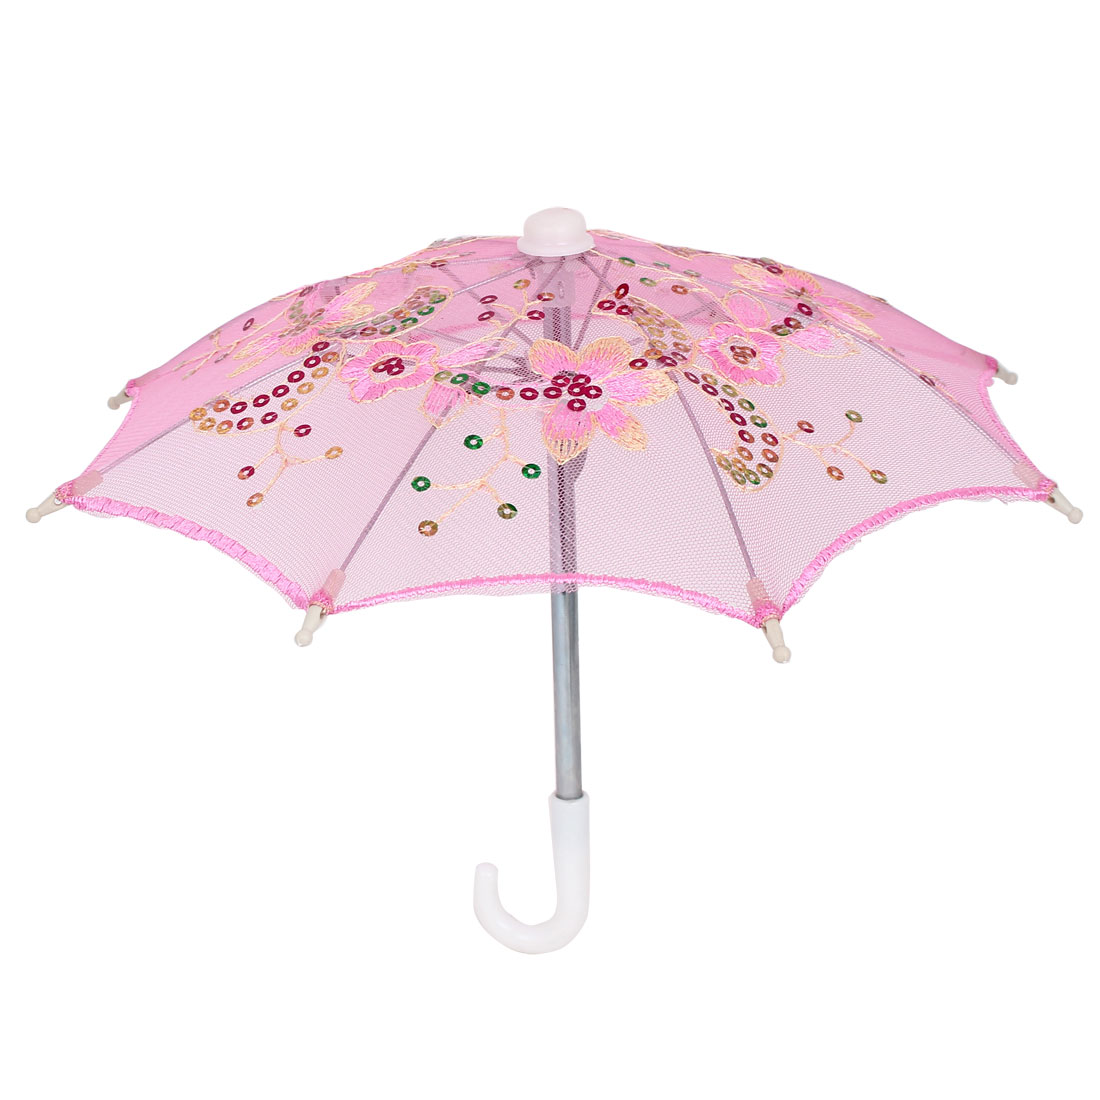 Flower Pattern Sequin Accent Wedding Party Table Decoration Mini Lace Umbrella Pink